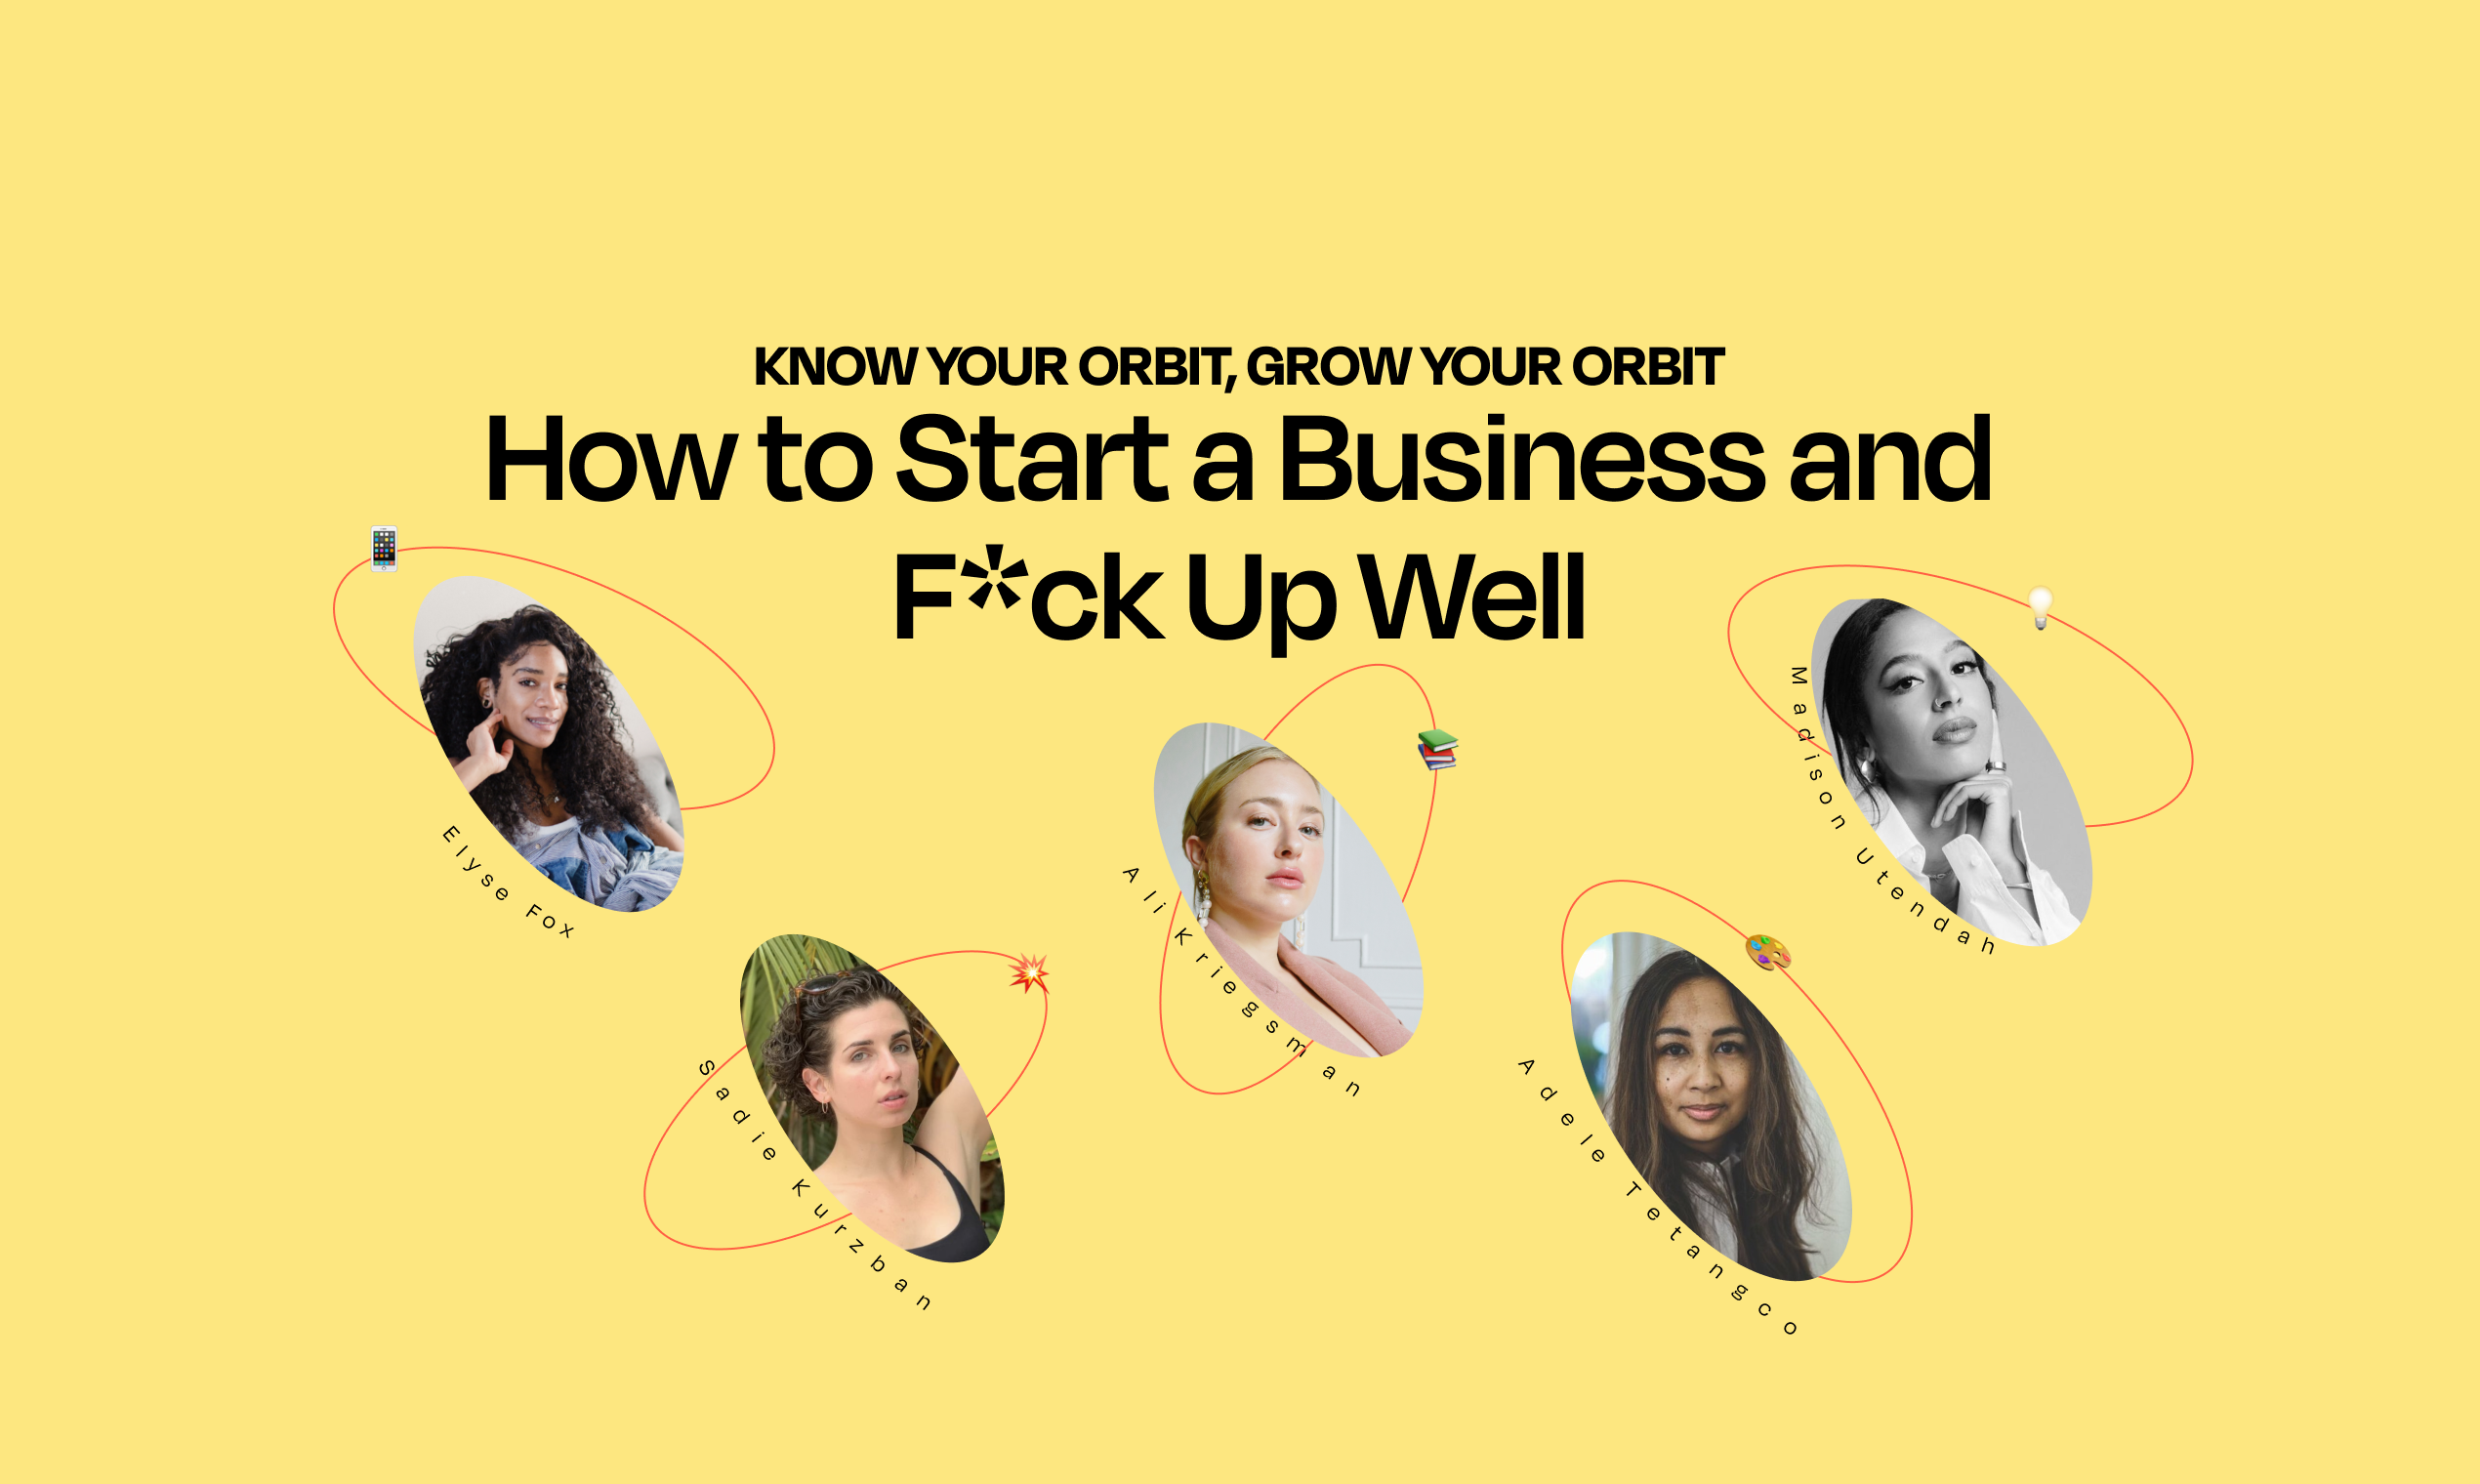 Know Your Orbit, Grow Your Orbit Event 3 Recap: How to Start a Business and F*ck Up Well